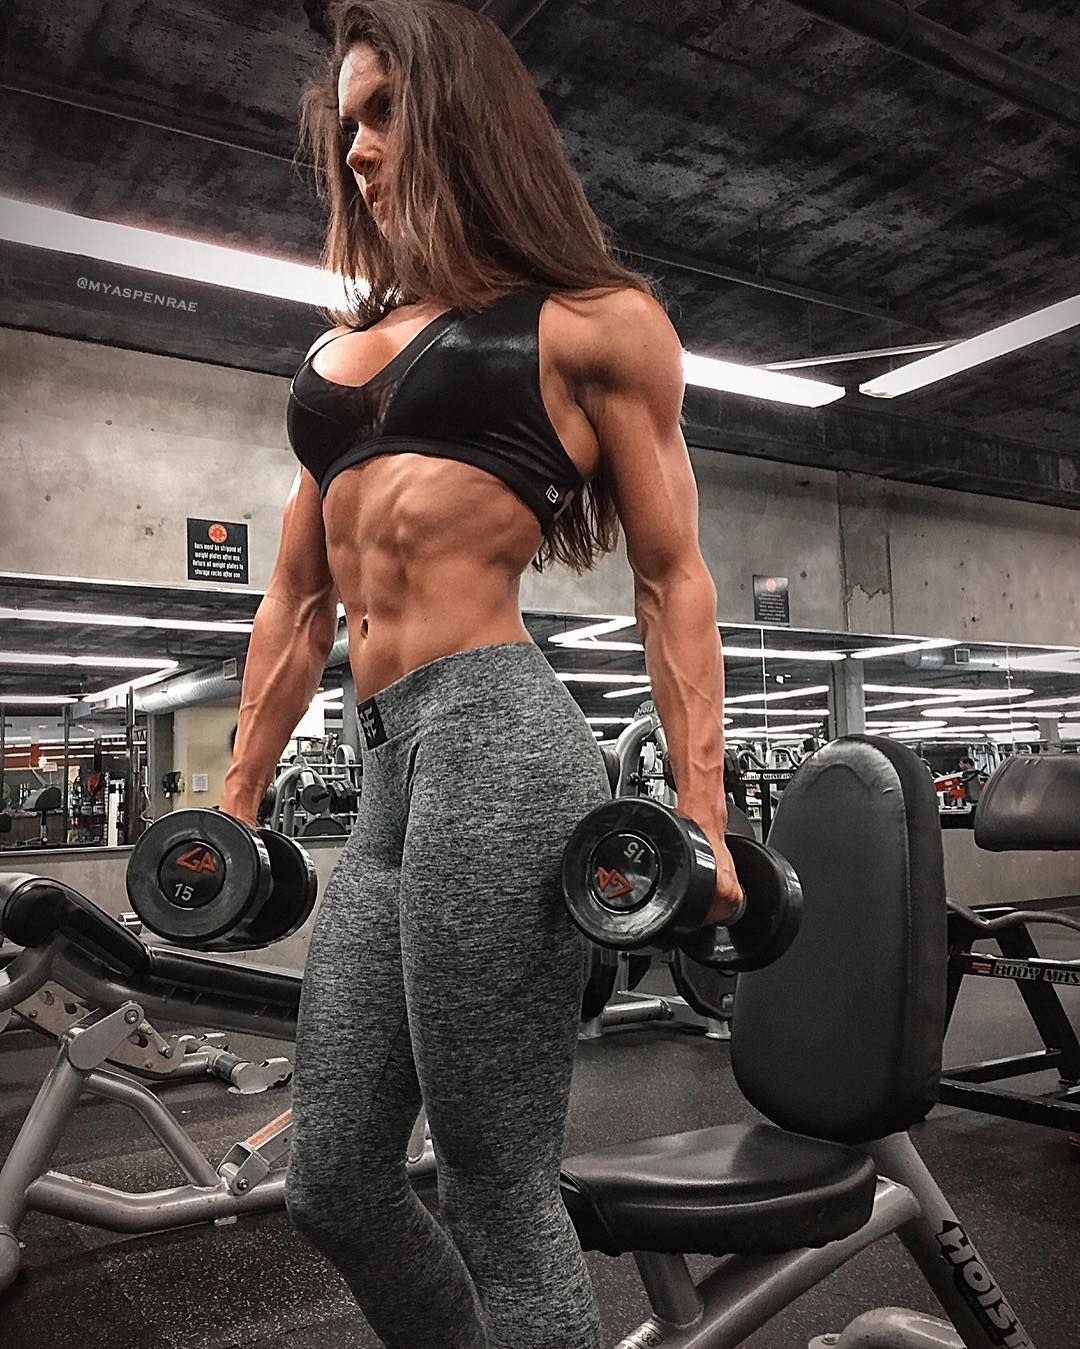 Aspen Rae | Muscle Girls | Pinterest